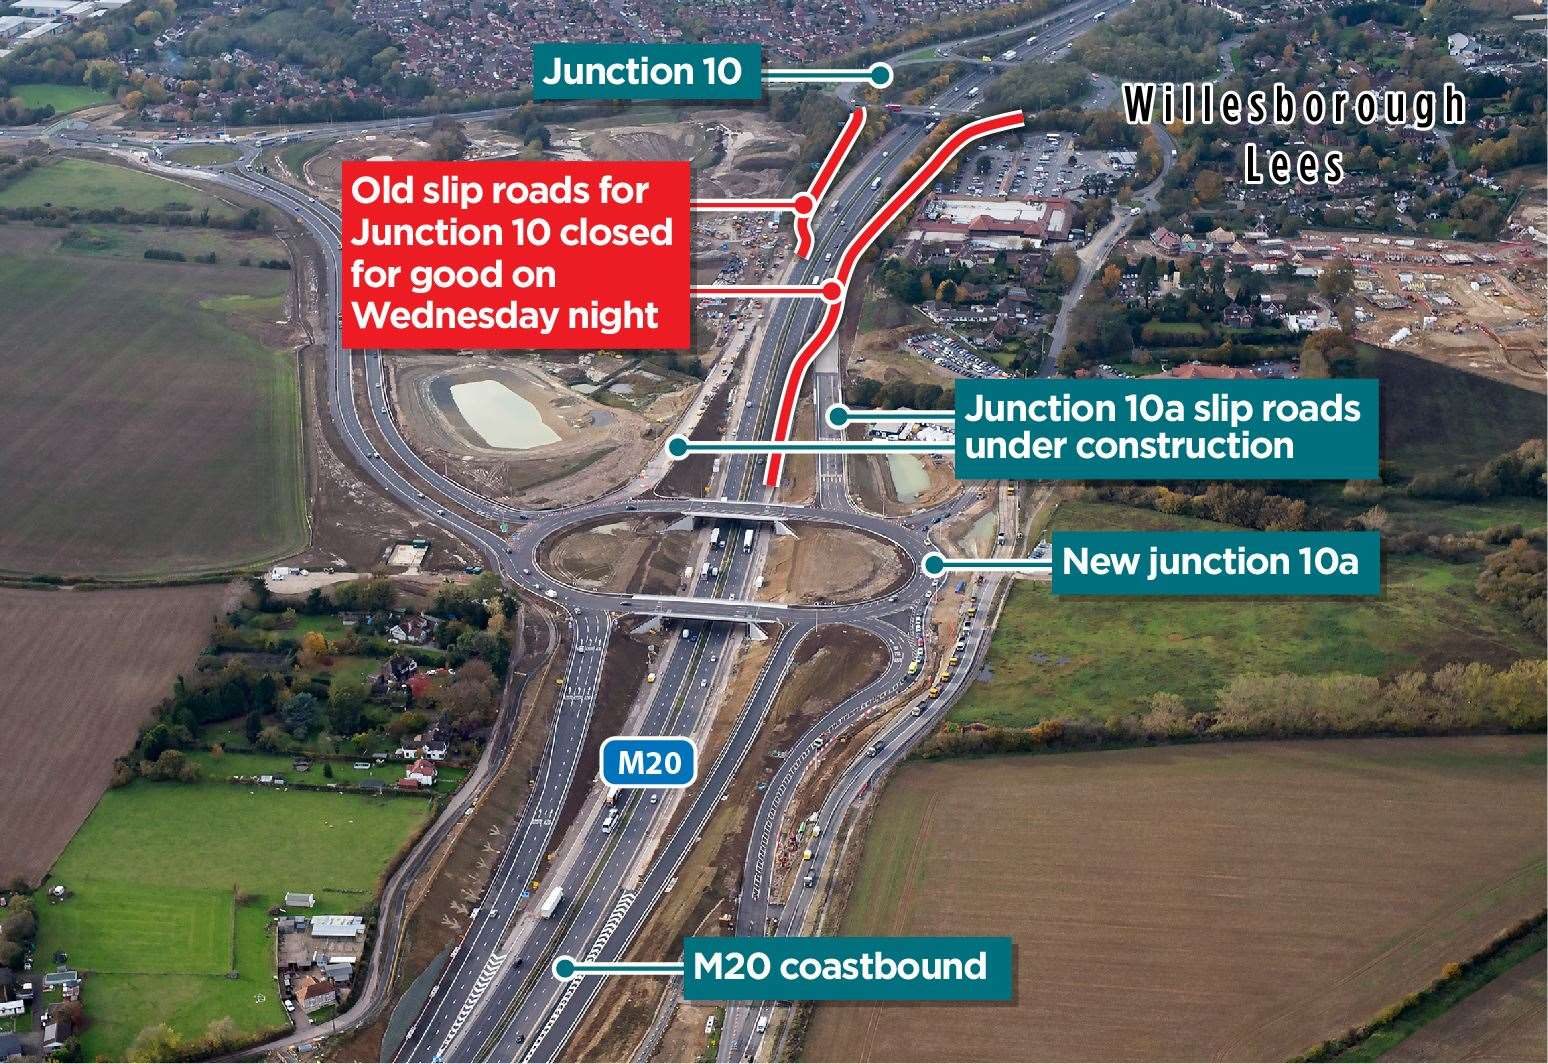 The coastbound on-slip and London-bound off-slip at Junction 10 closed on Wednesday night